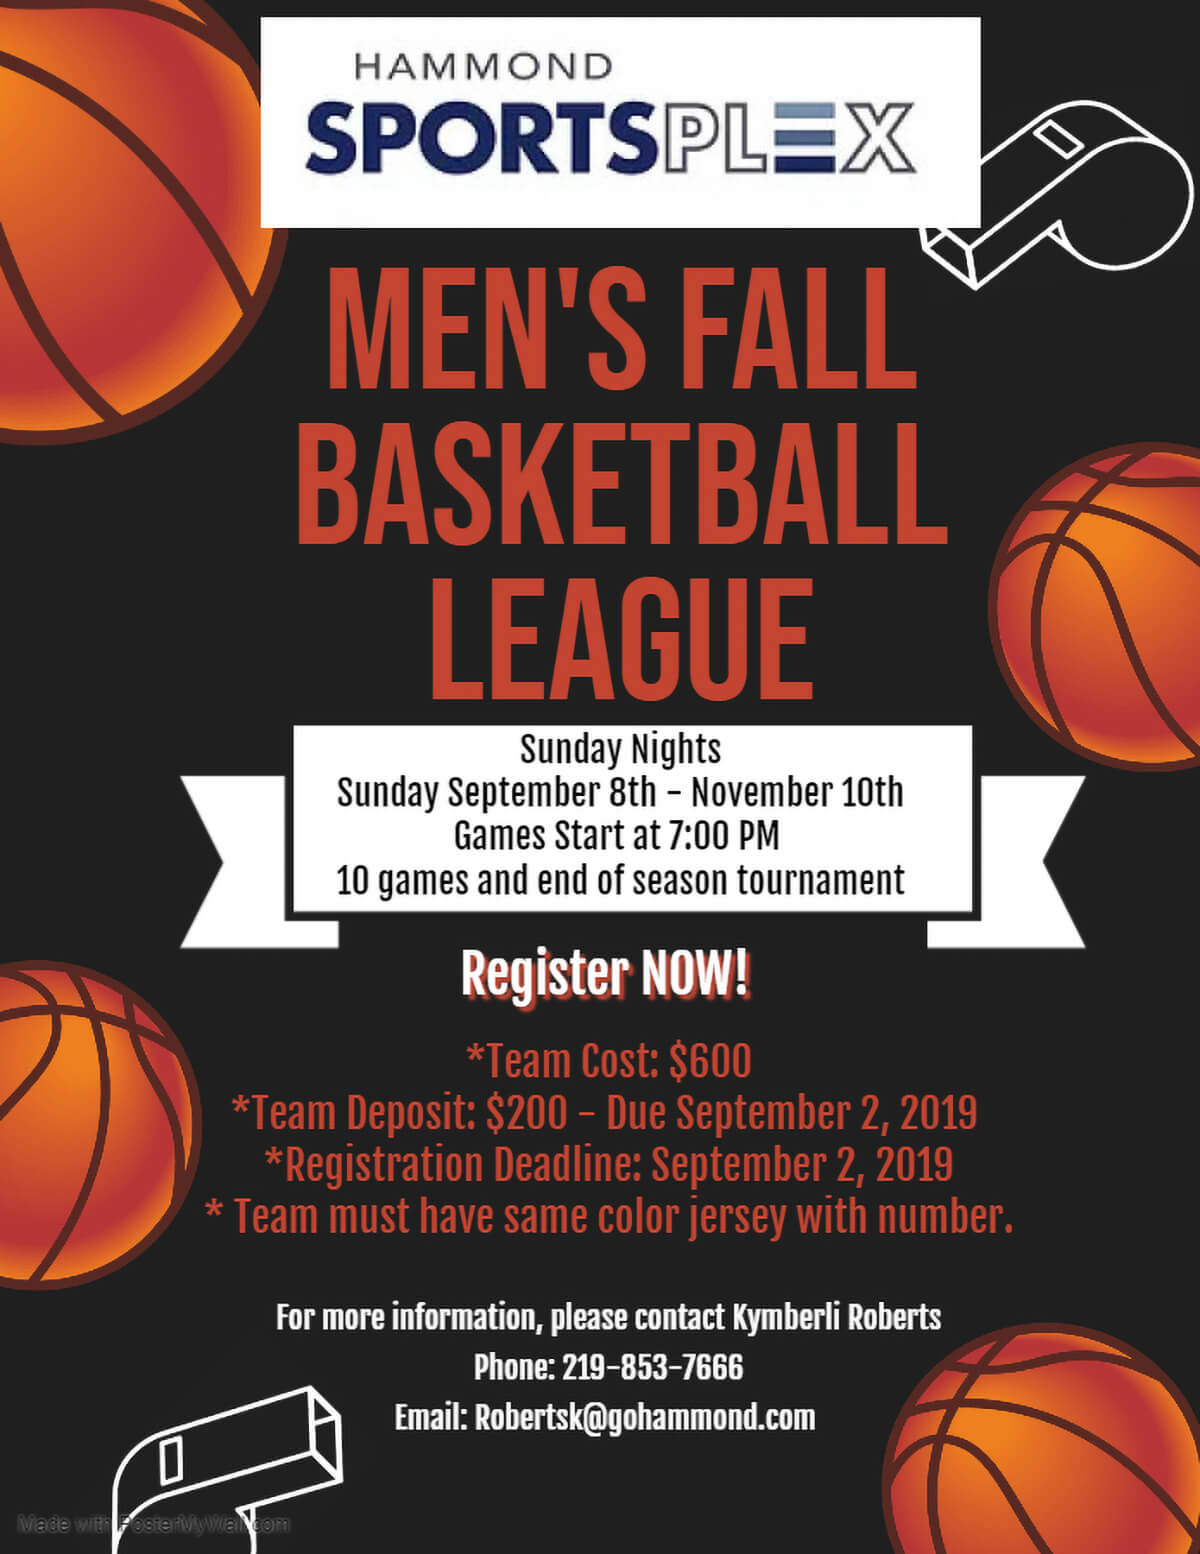 Hammond Sportsplex to Host Men's Fall Basketball League